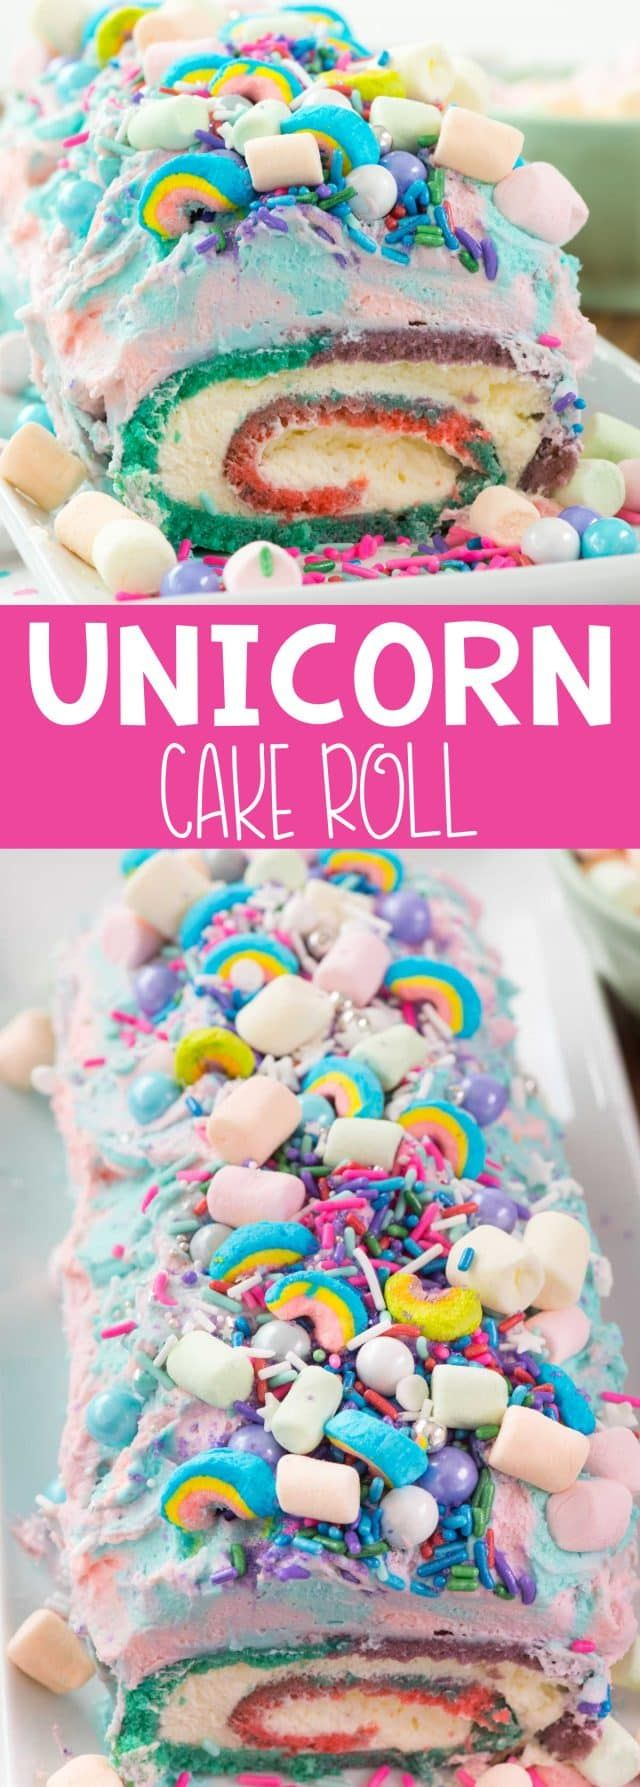 Unicorn Cake Roll - an easy cake roll recipe that is all things rainbow and UNICORN! Colorful cake and frosting, pudding whipped cream, sprinkles, marshmallows and all things glitter and fun.